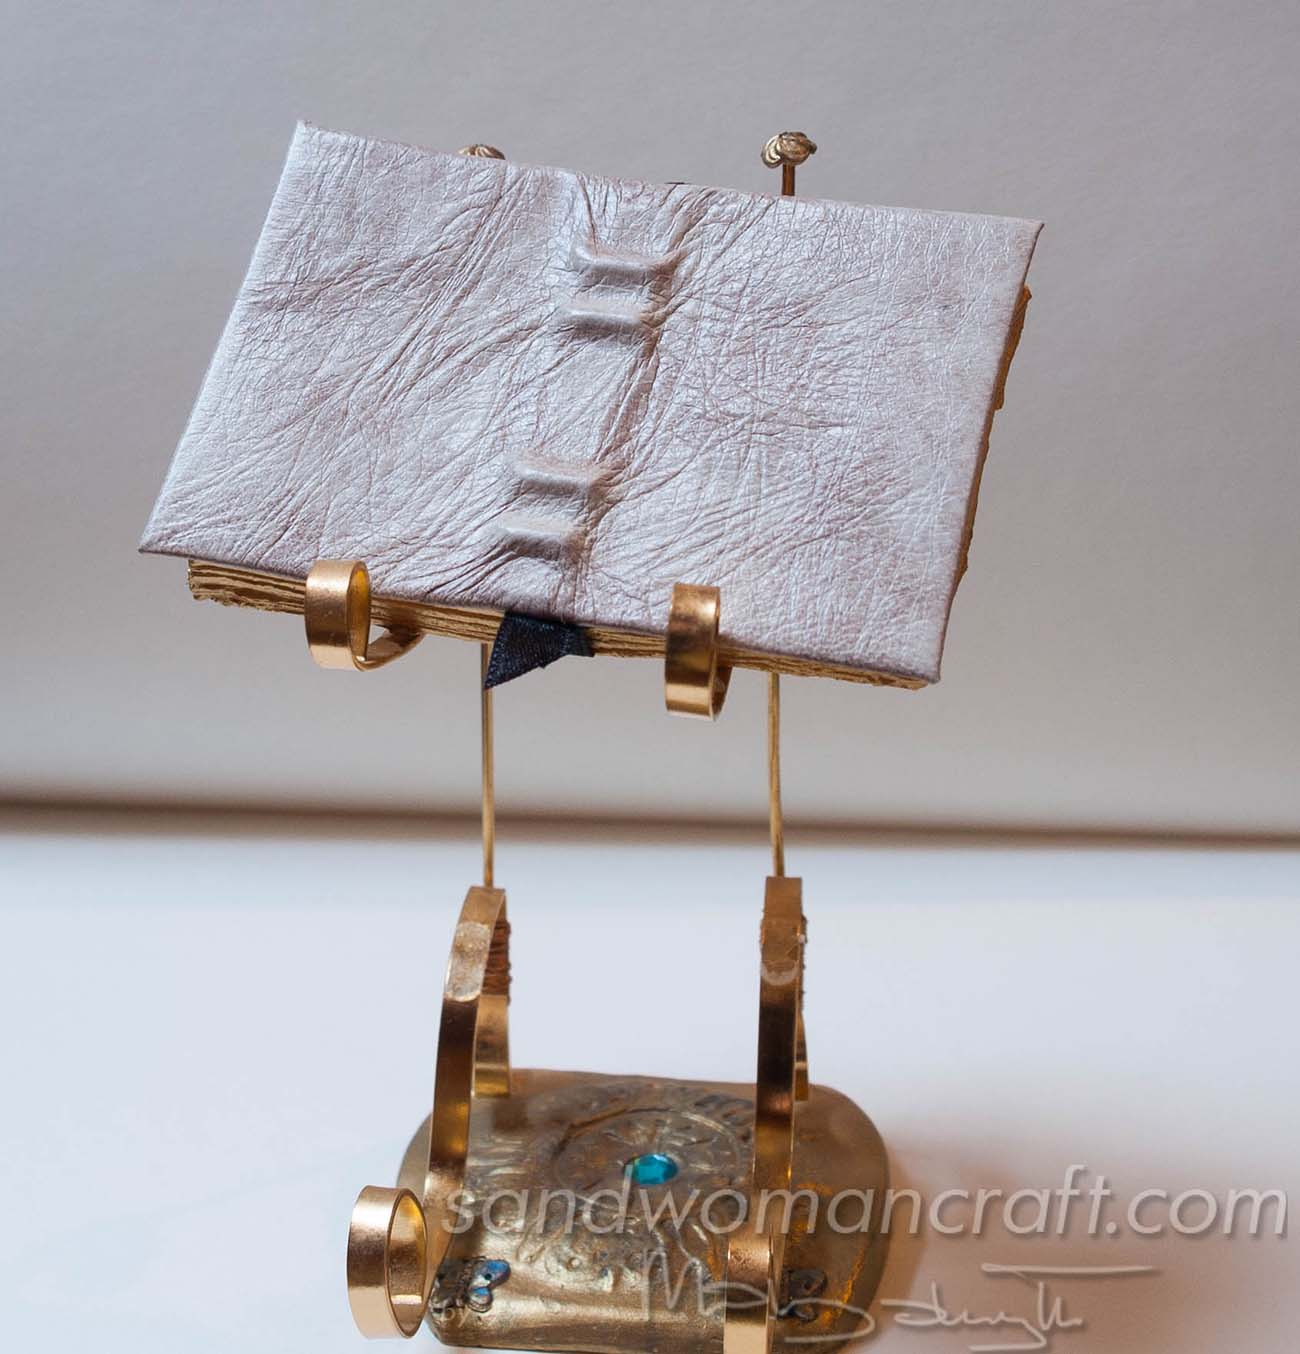 Miniature Medieval open book in 1:6 scale